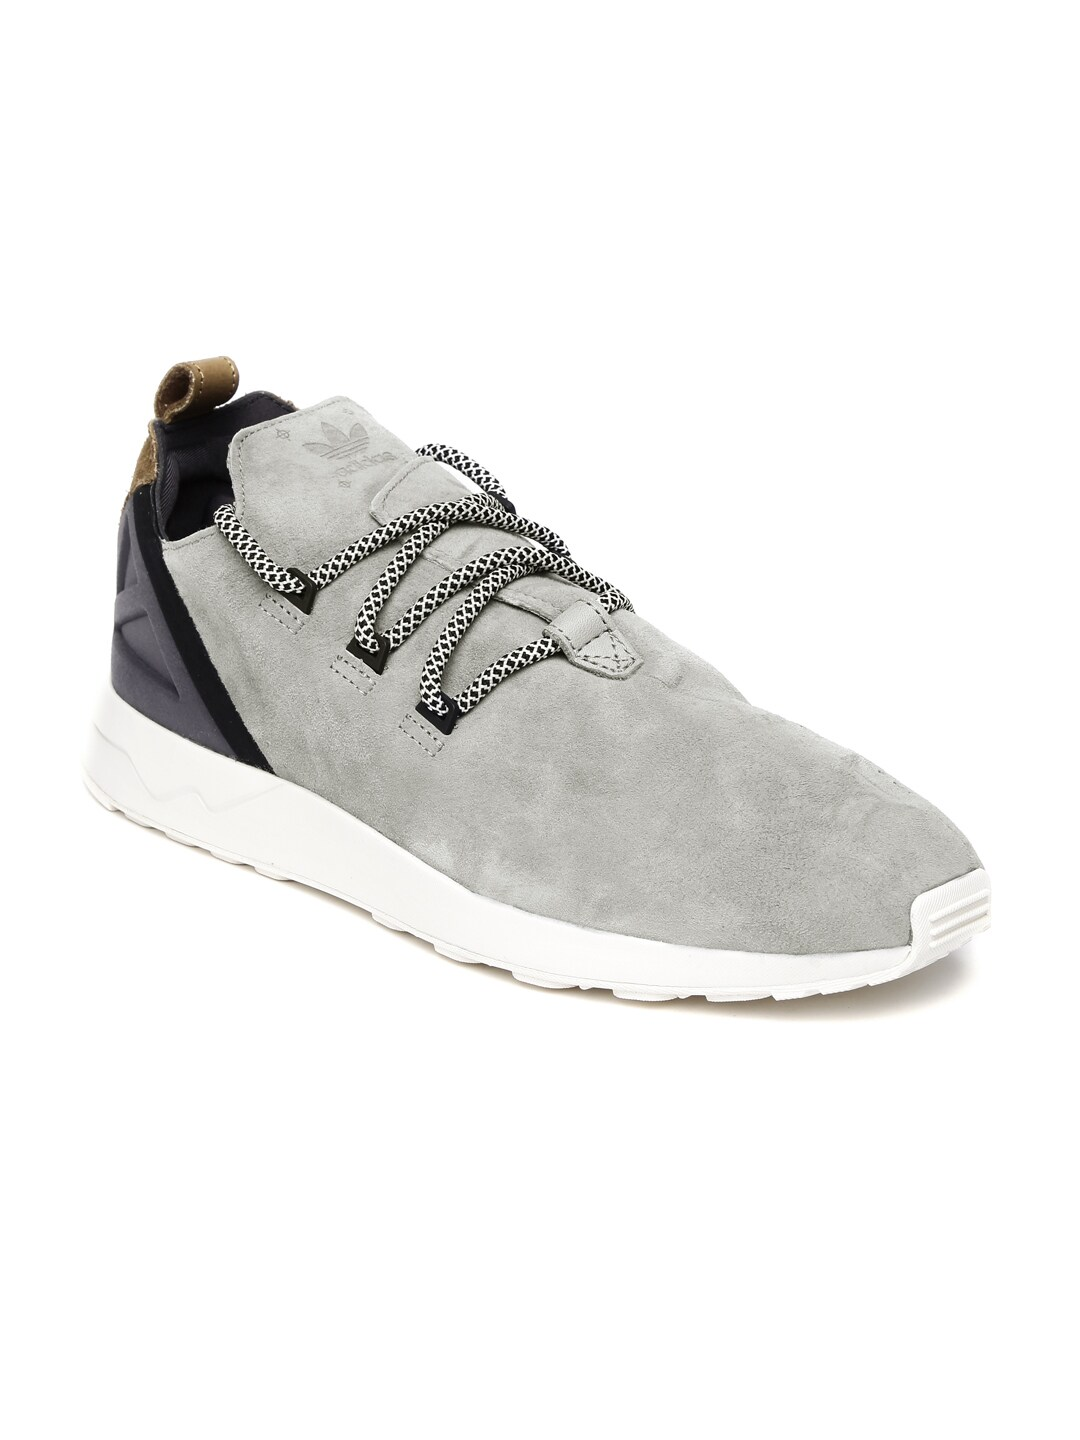 reputable site 79498 7ed19 Adidas s76364 Men Grey Zx Flux Adv X Suede Sneakers ...